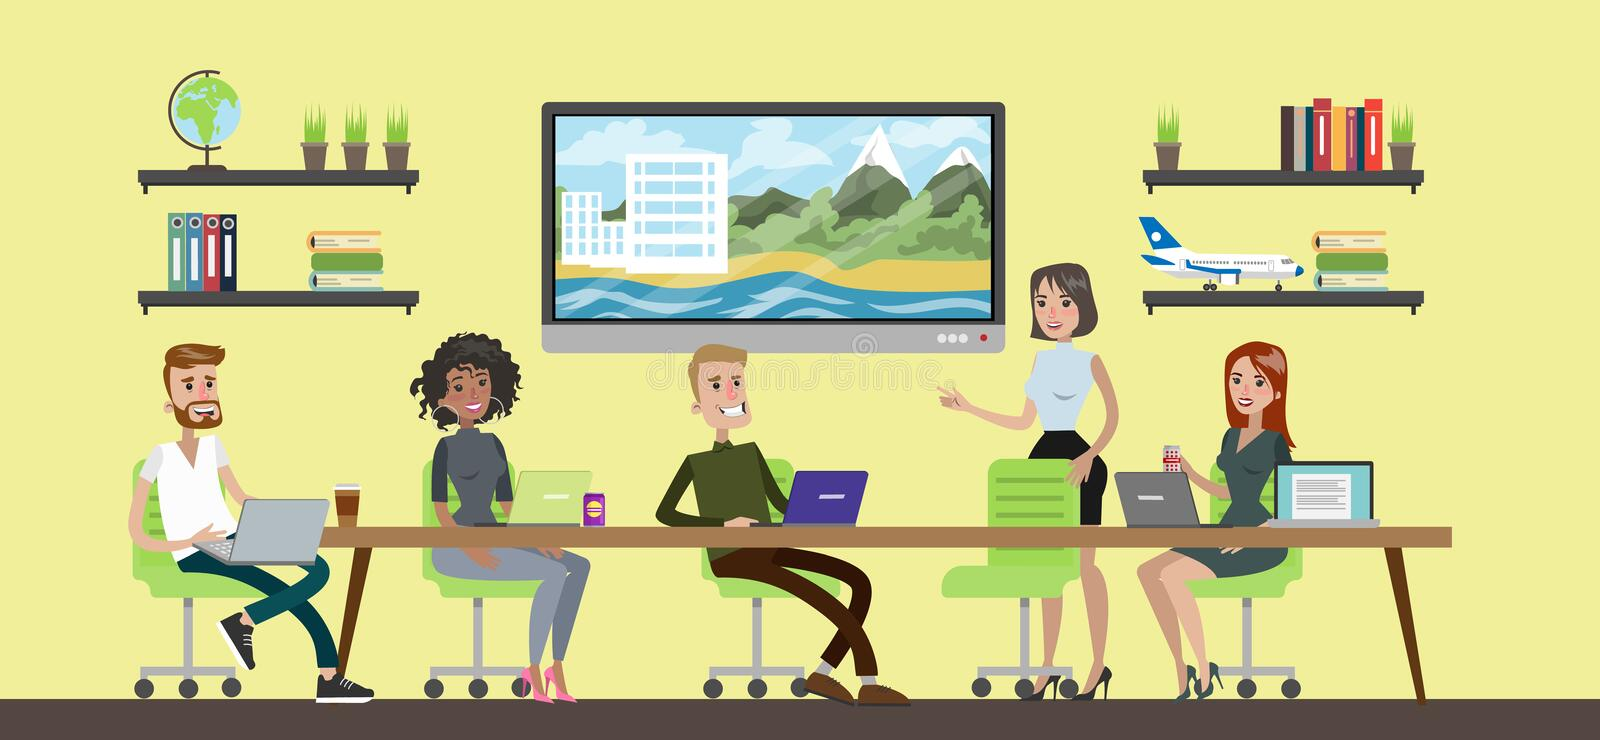 Travel agency room. Travel agency room with people working together royalty free illustration